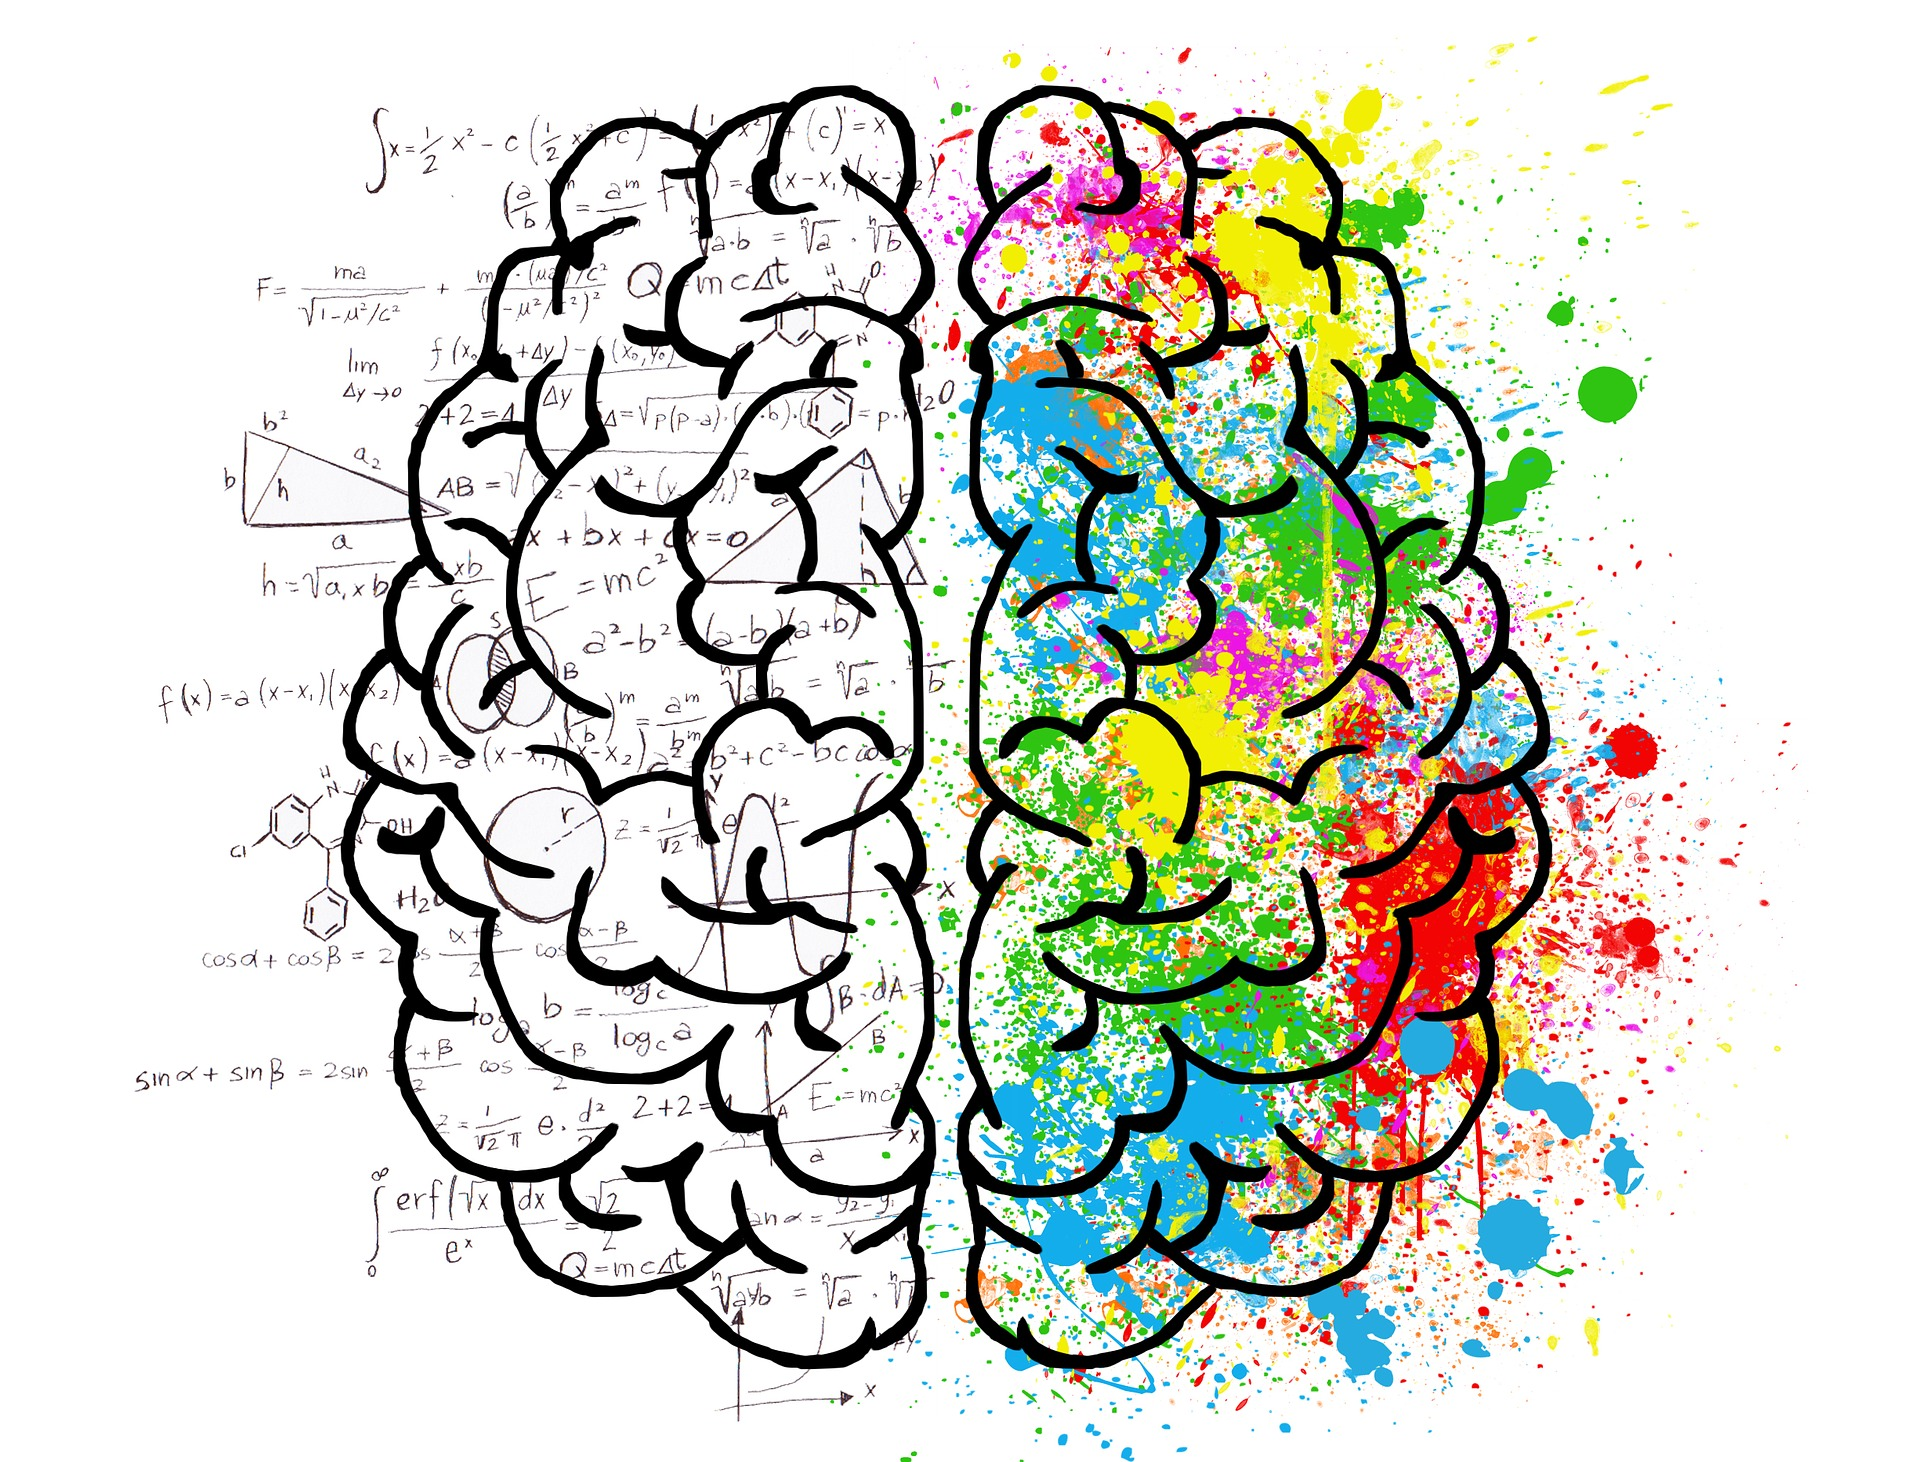 Epilepsy Innovation Institute My Brain Map Initiative Launches Call